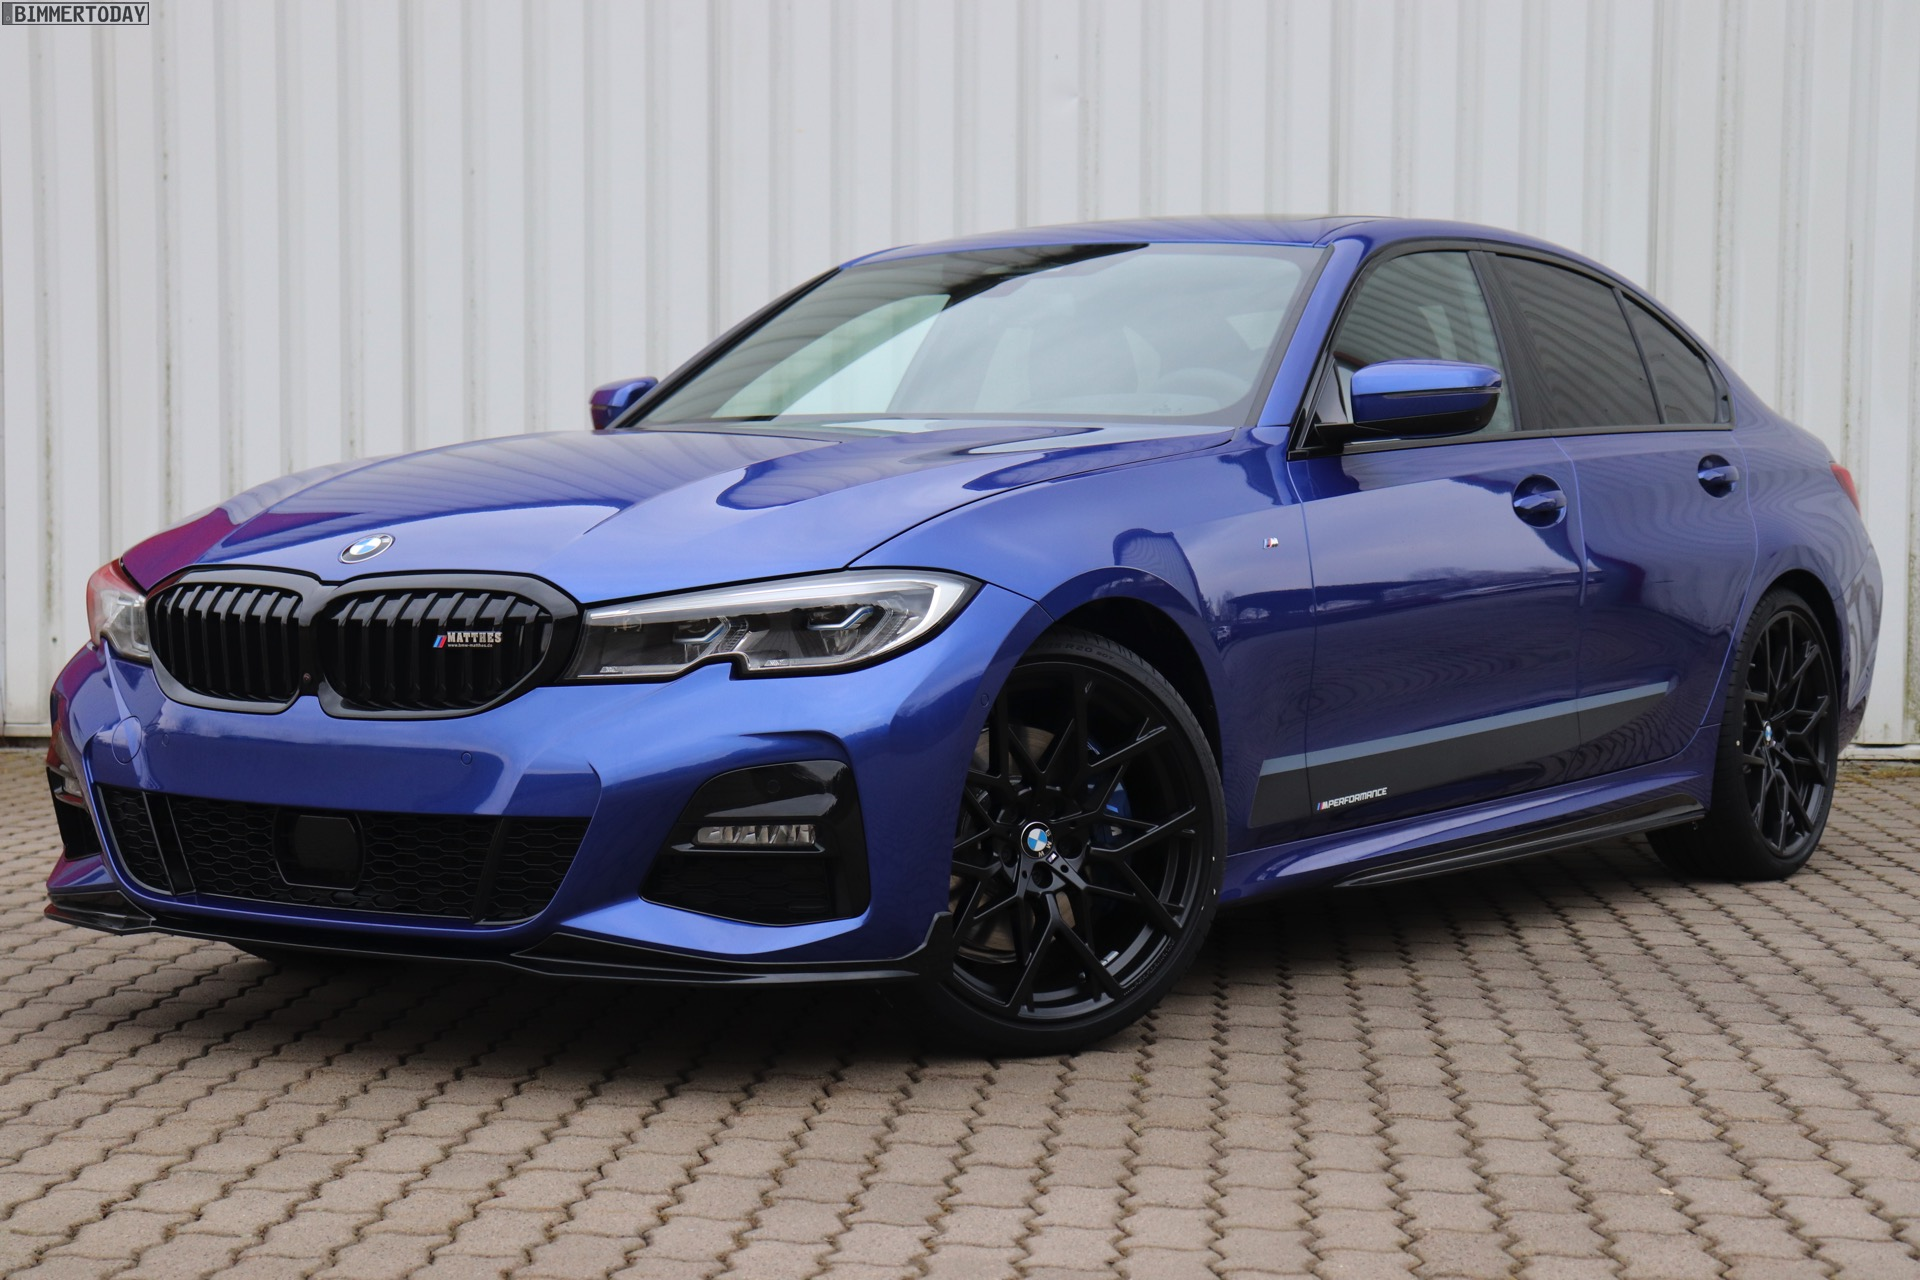 Portimao Blue G20 330i M Sport With M Performance Parts